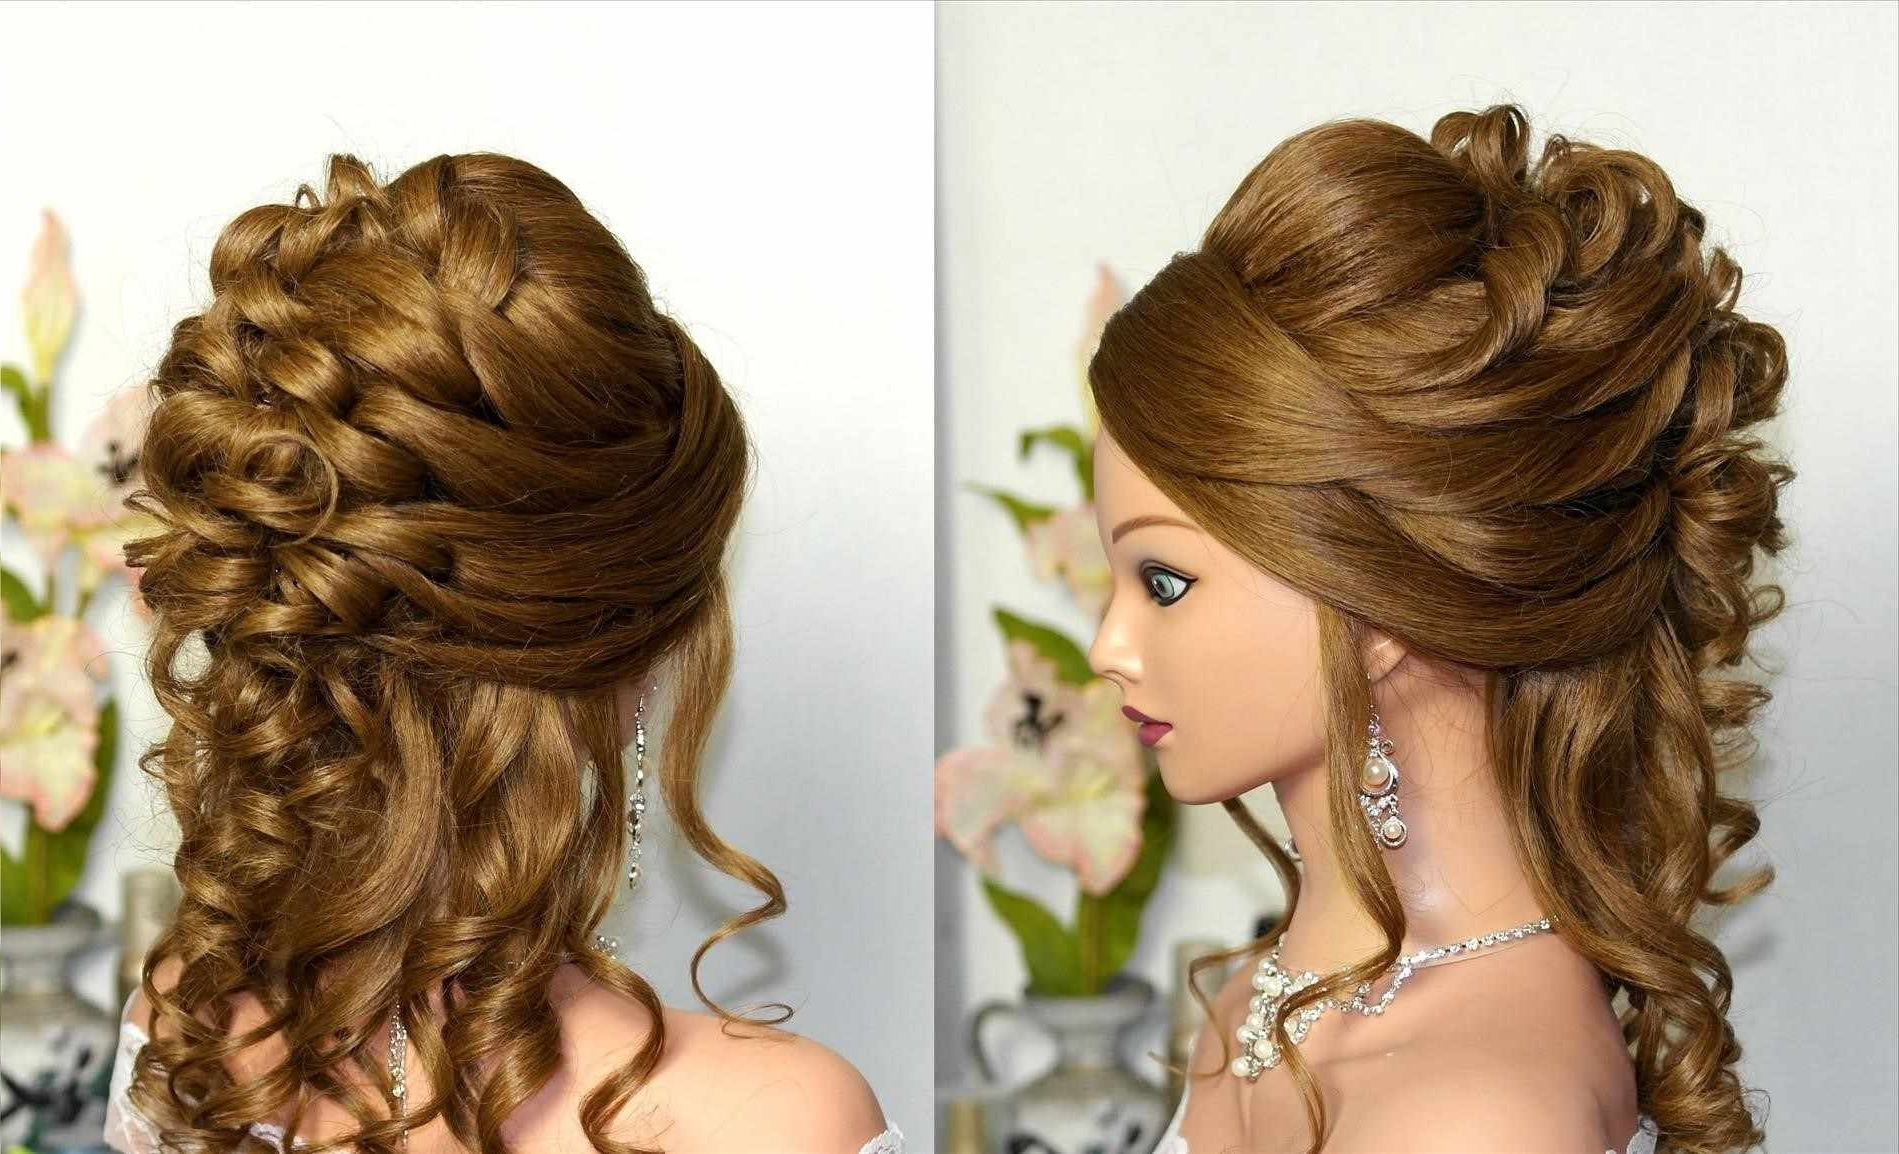 Trendy Low Bun Updo Hairstyles Tutorials Easy Cute Impressive For In Quick Easy Updo Hairstyles For Thick Hair (View 5 of 15)